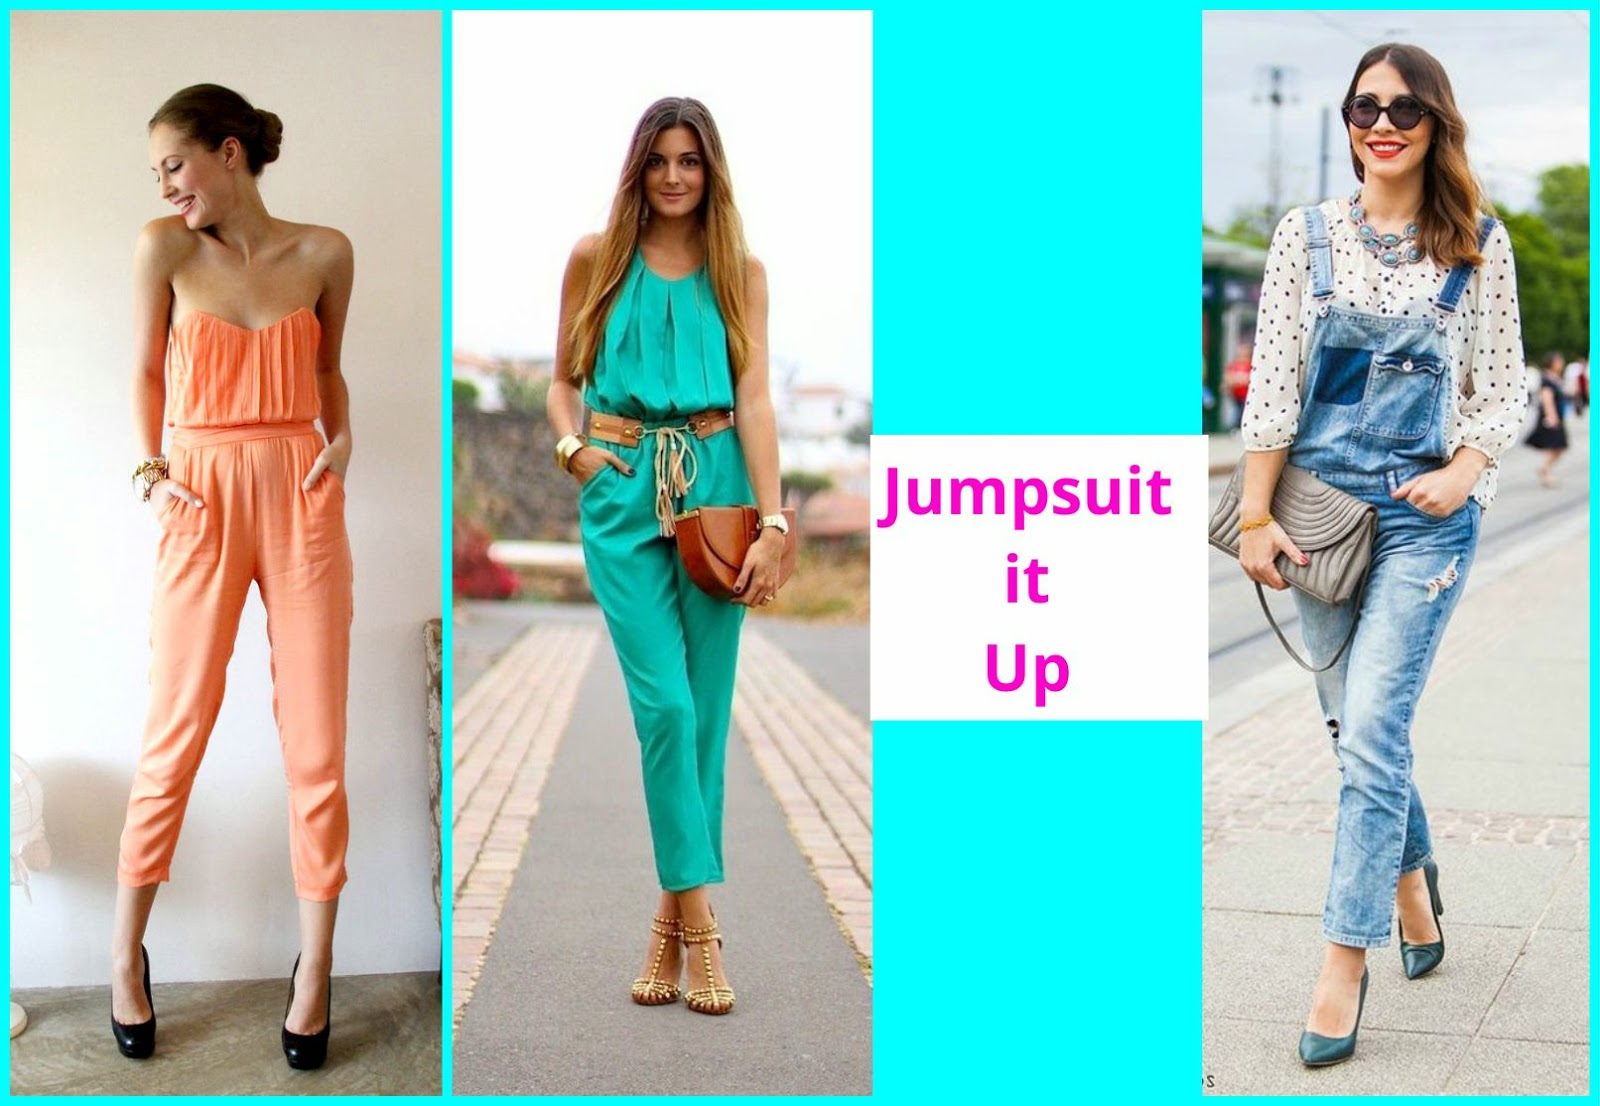 monsoon jumpsuit fashions, Jumpsuits for monsoon